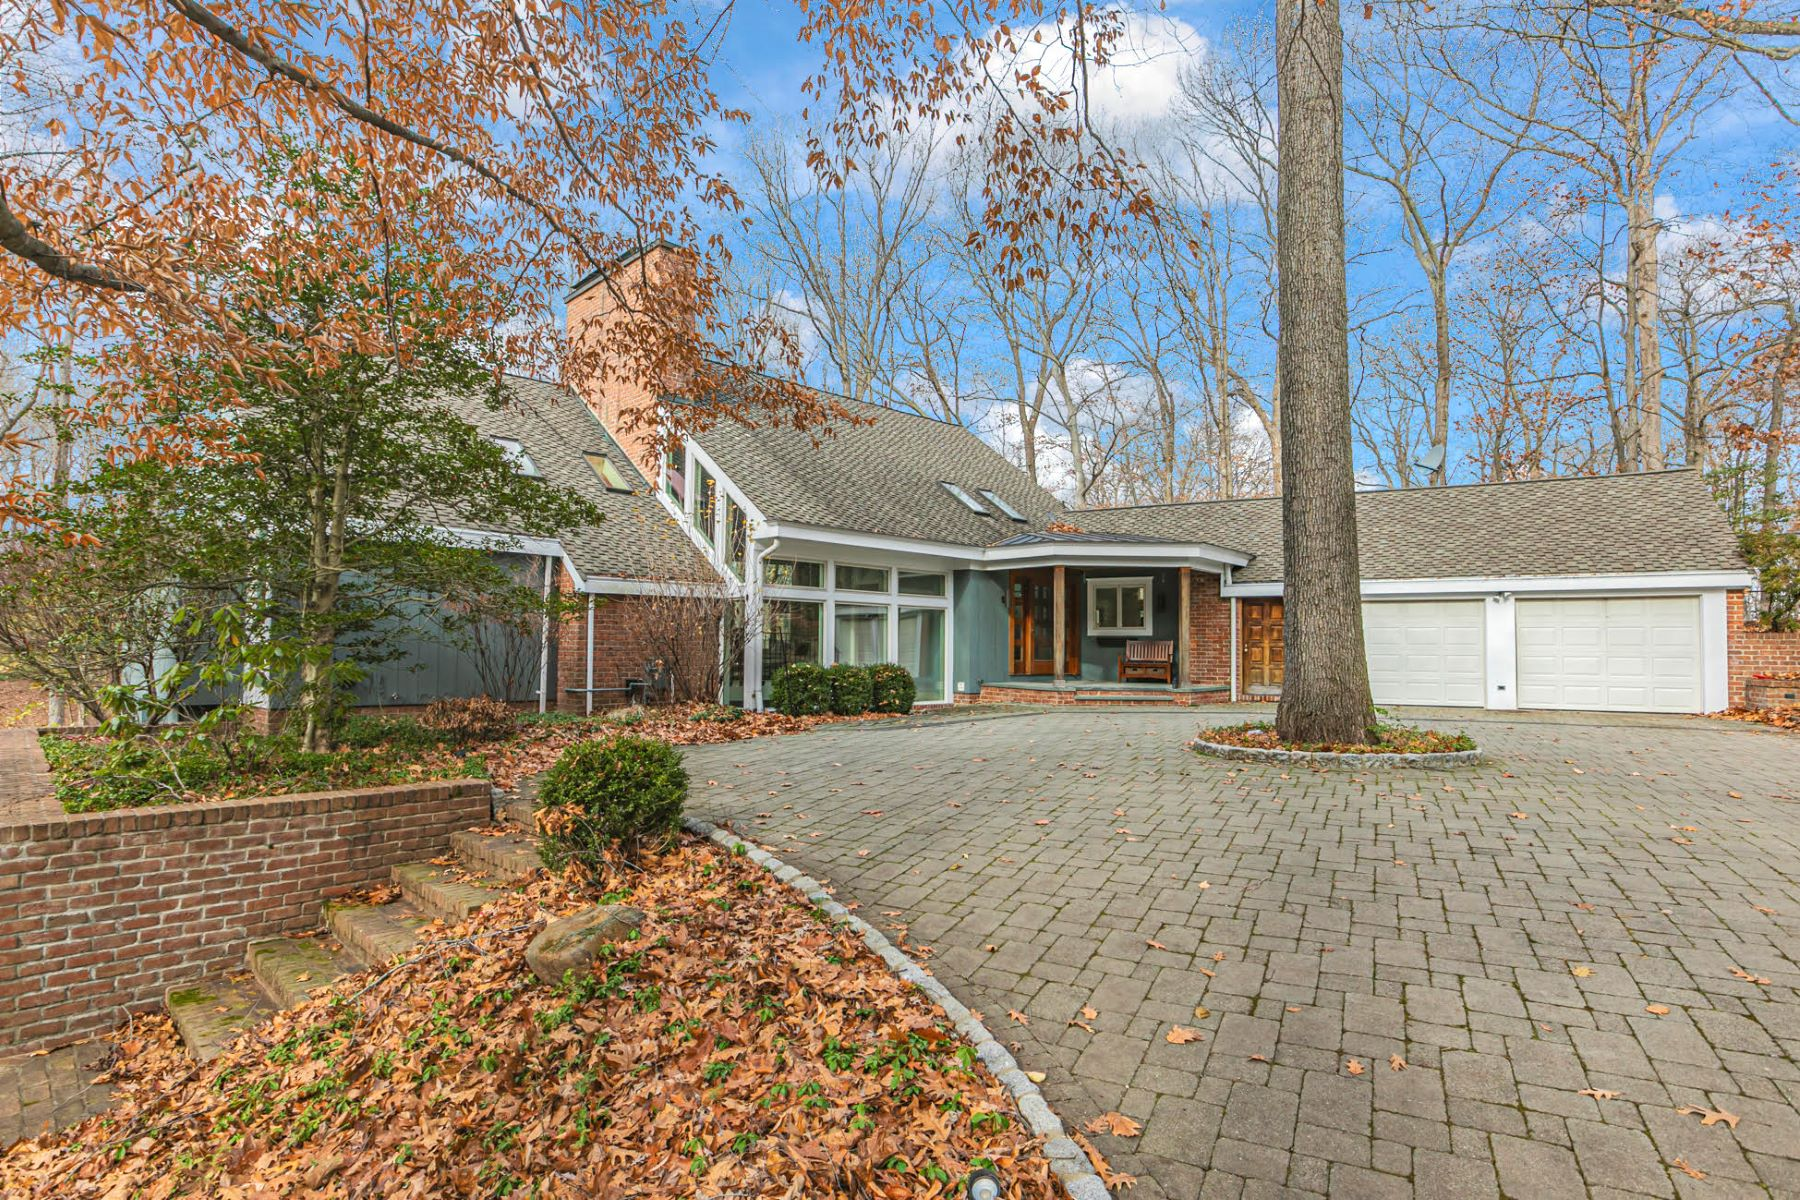 Additional photo for property listing at Immaculately Presented Home With A Prized Bedens Brook View 188 Rolling Hill Road, Skillman, New Jersey 08558 United States